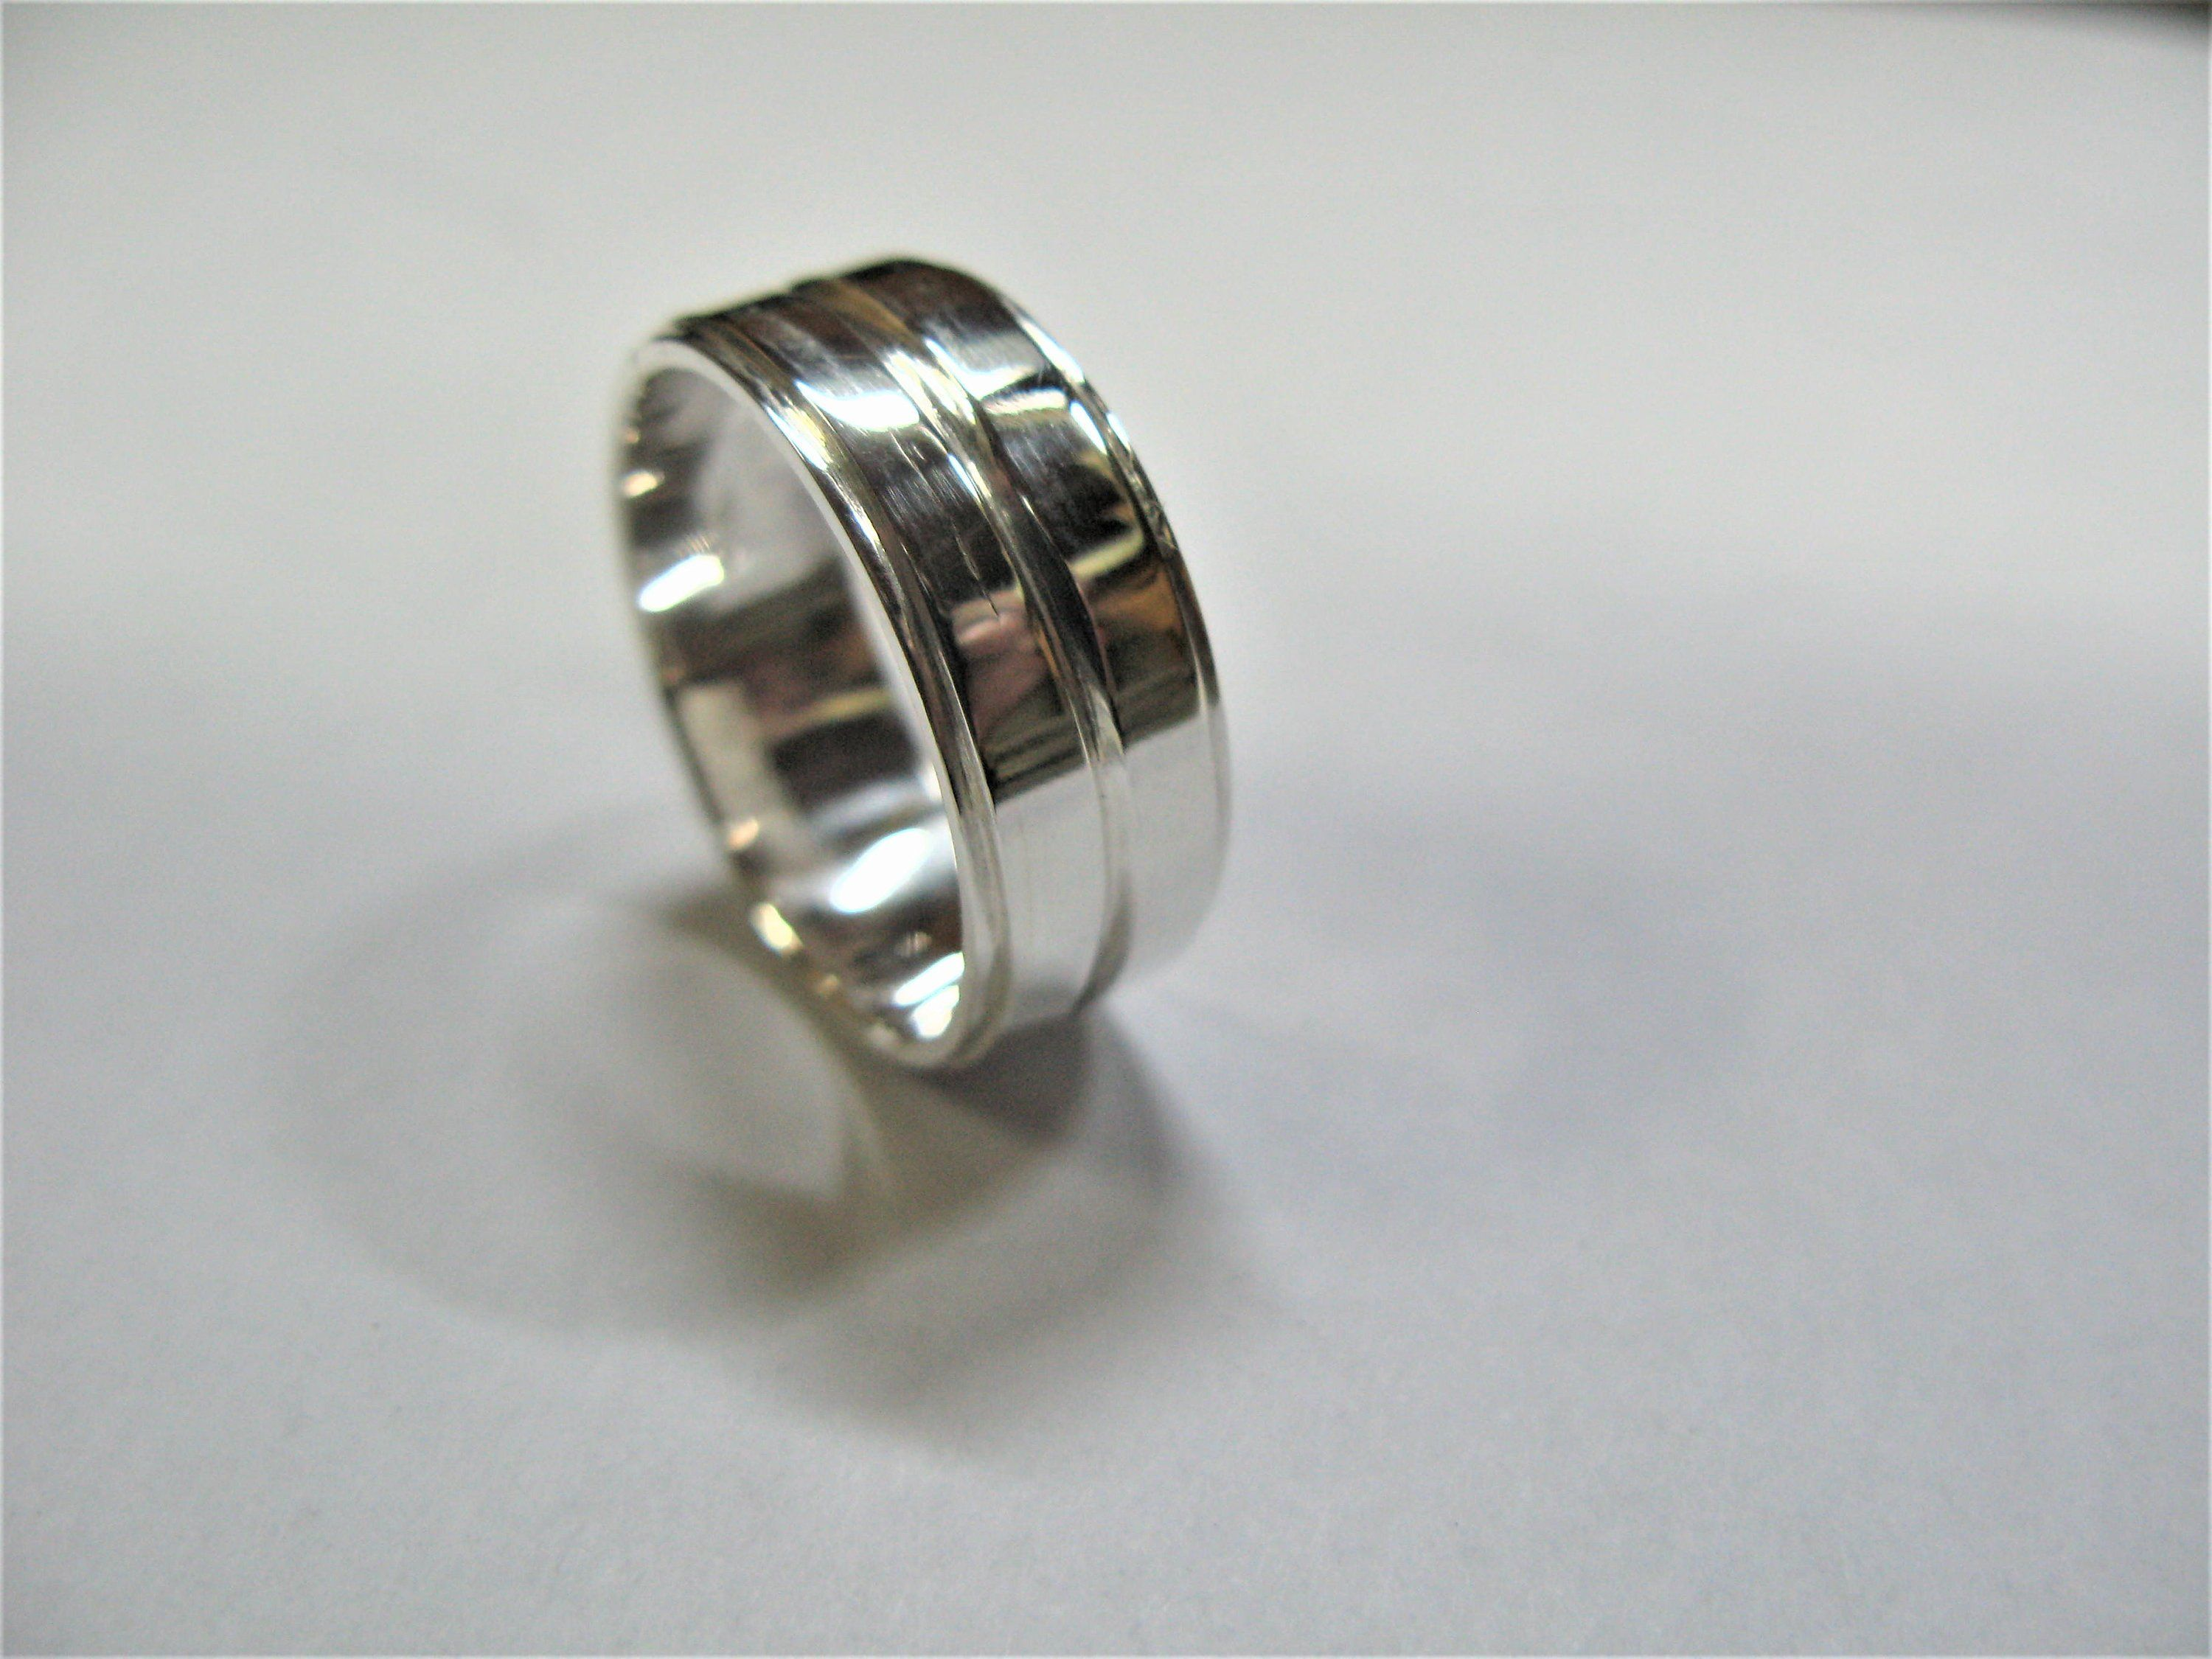 Supernatural Dean Winchester Ring In 925 Silver Etsy Supernatural Dean Winchester Supernatural Dean Supernatural Rings